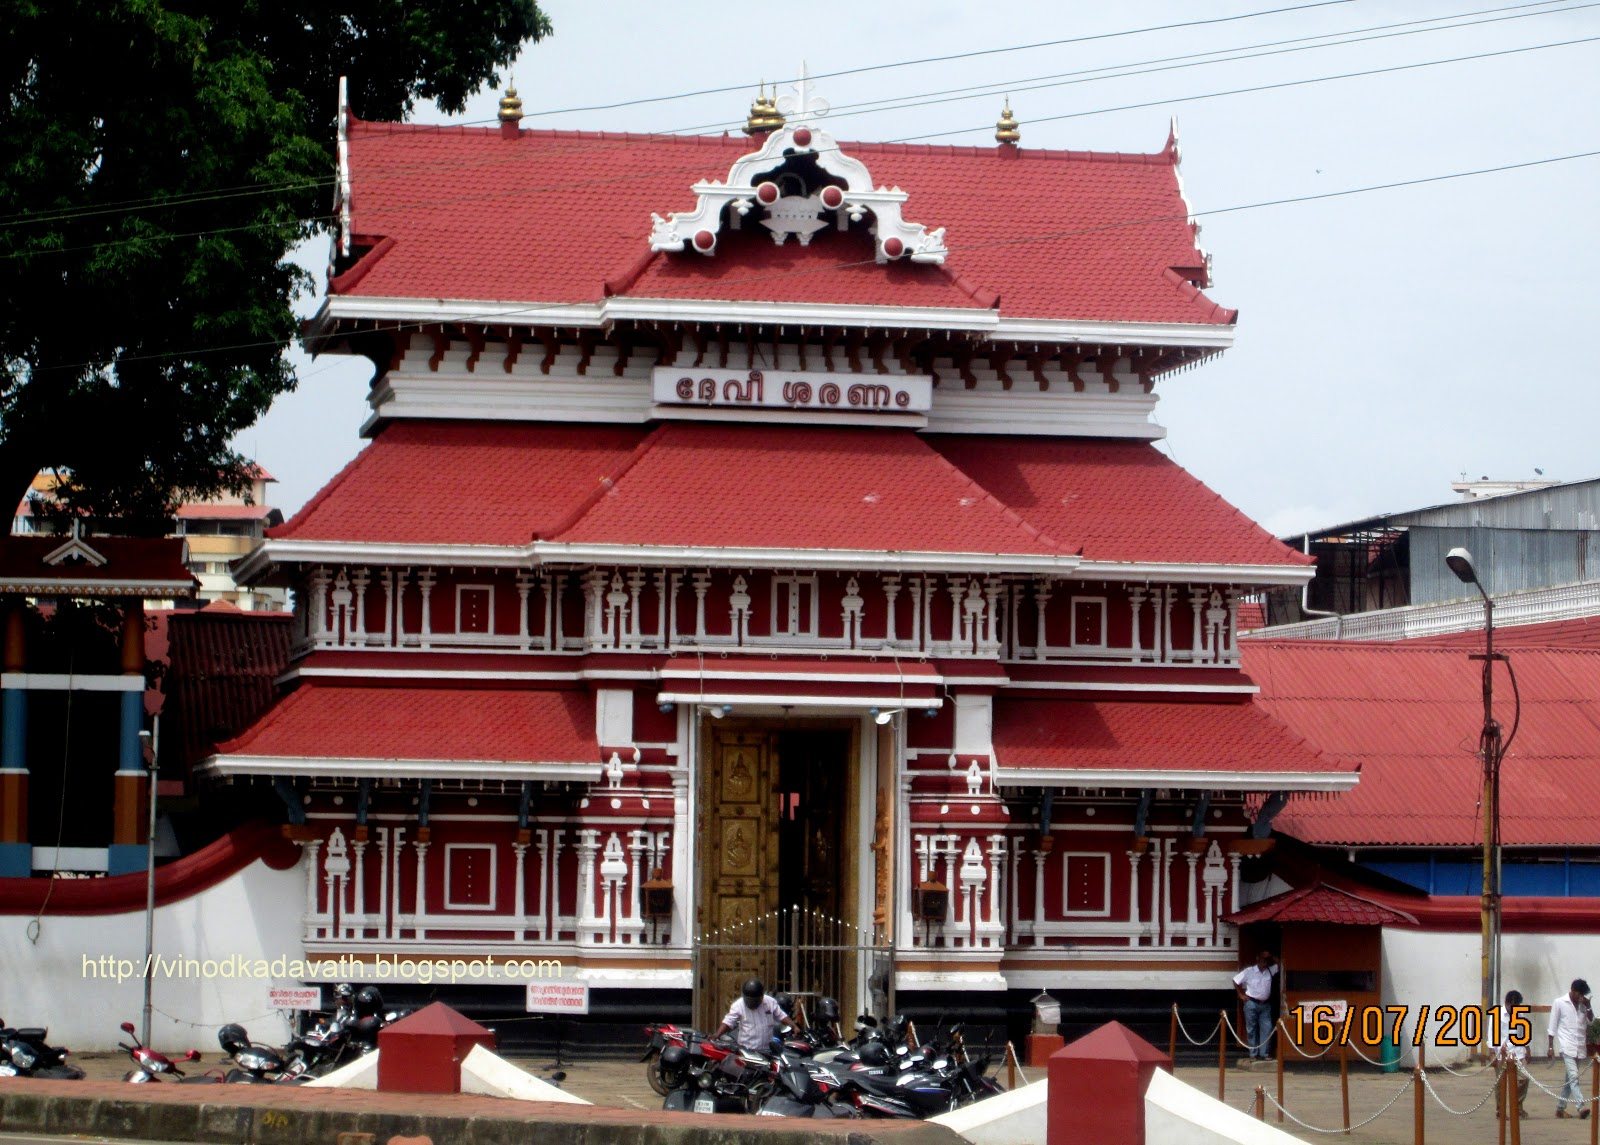 thrissur the cultural capital of kerala Thrissur (formerly trichur) is a one of the largest city in the central part of kerala in southern indiait is known as cultural capital of kerala, with numerous temples, churches, cultural institutions, art centers, museums etc.